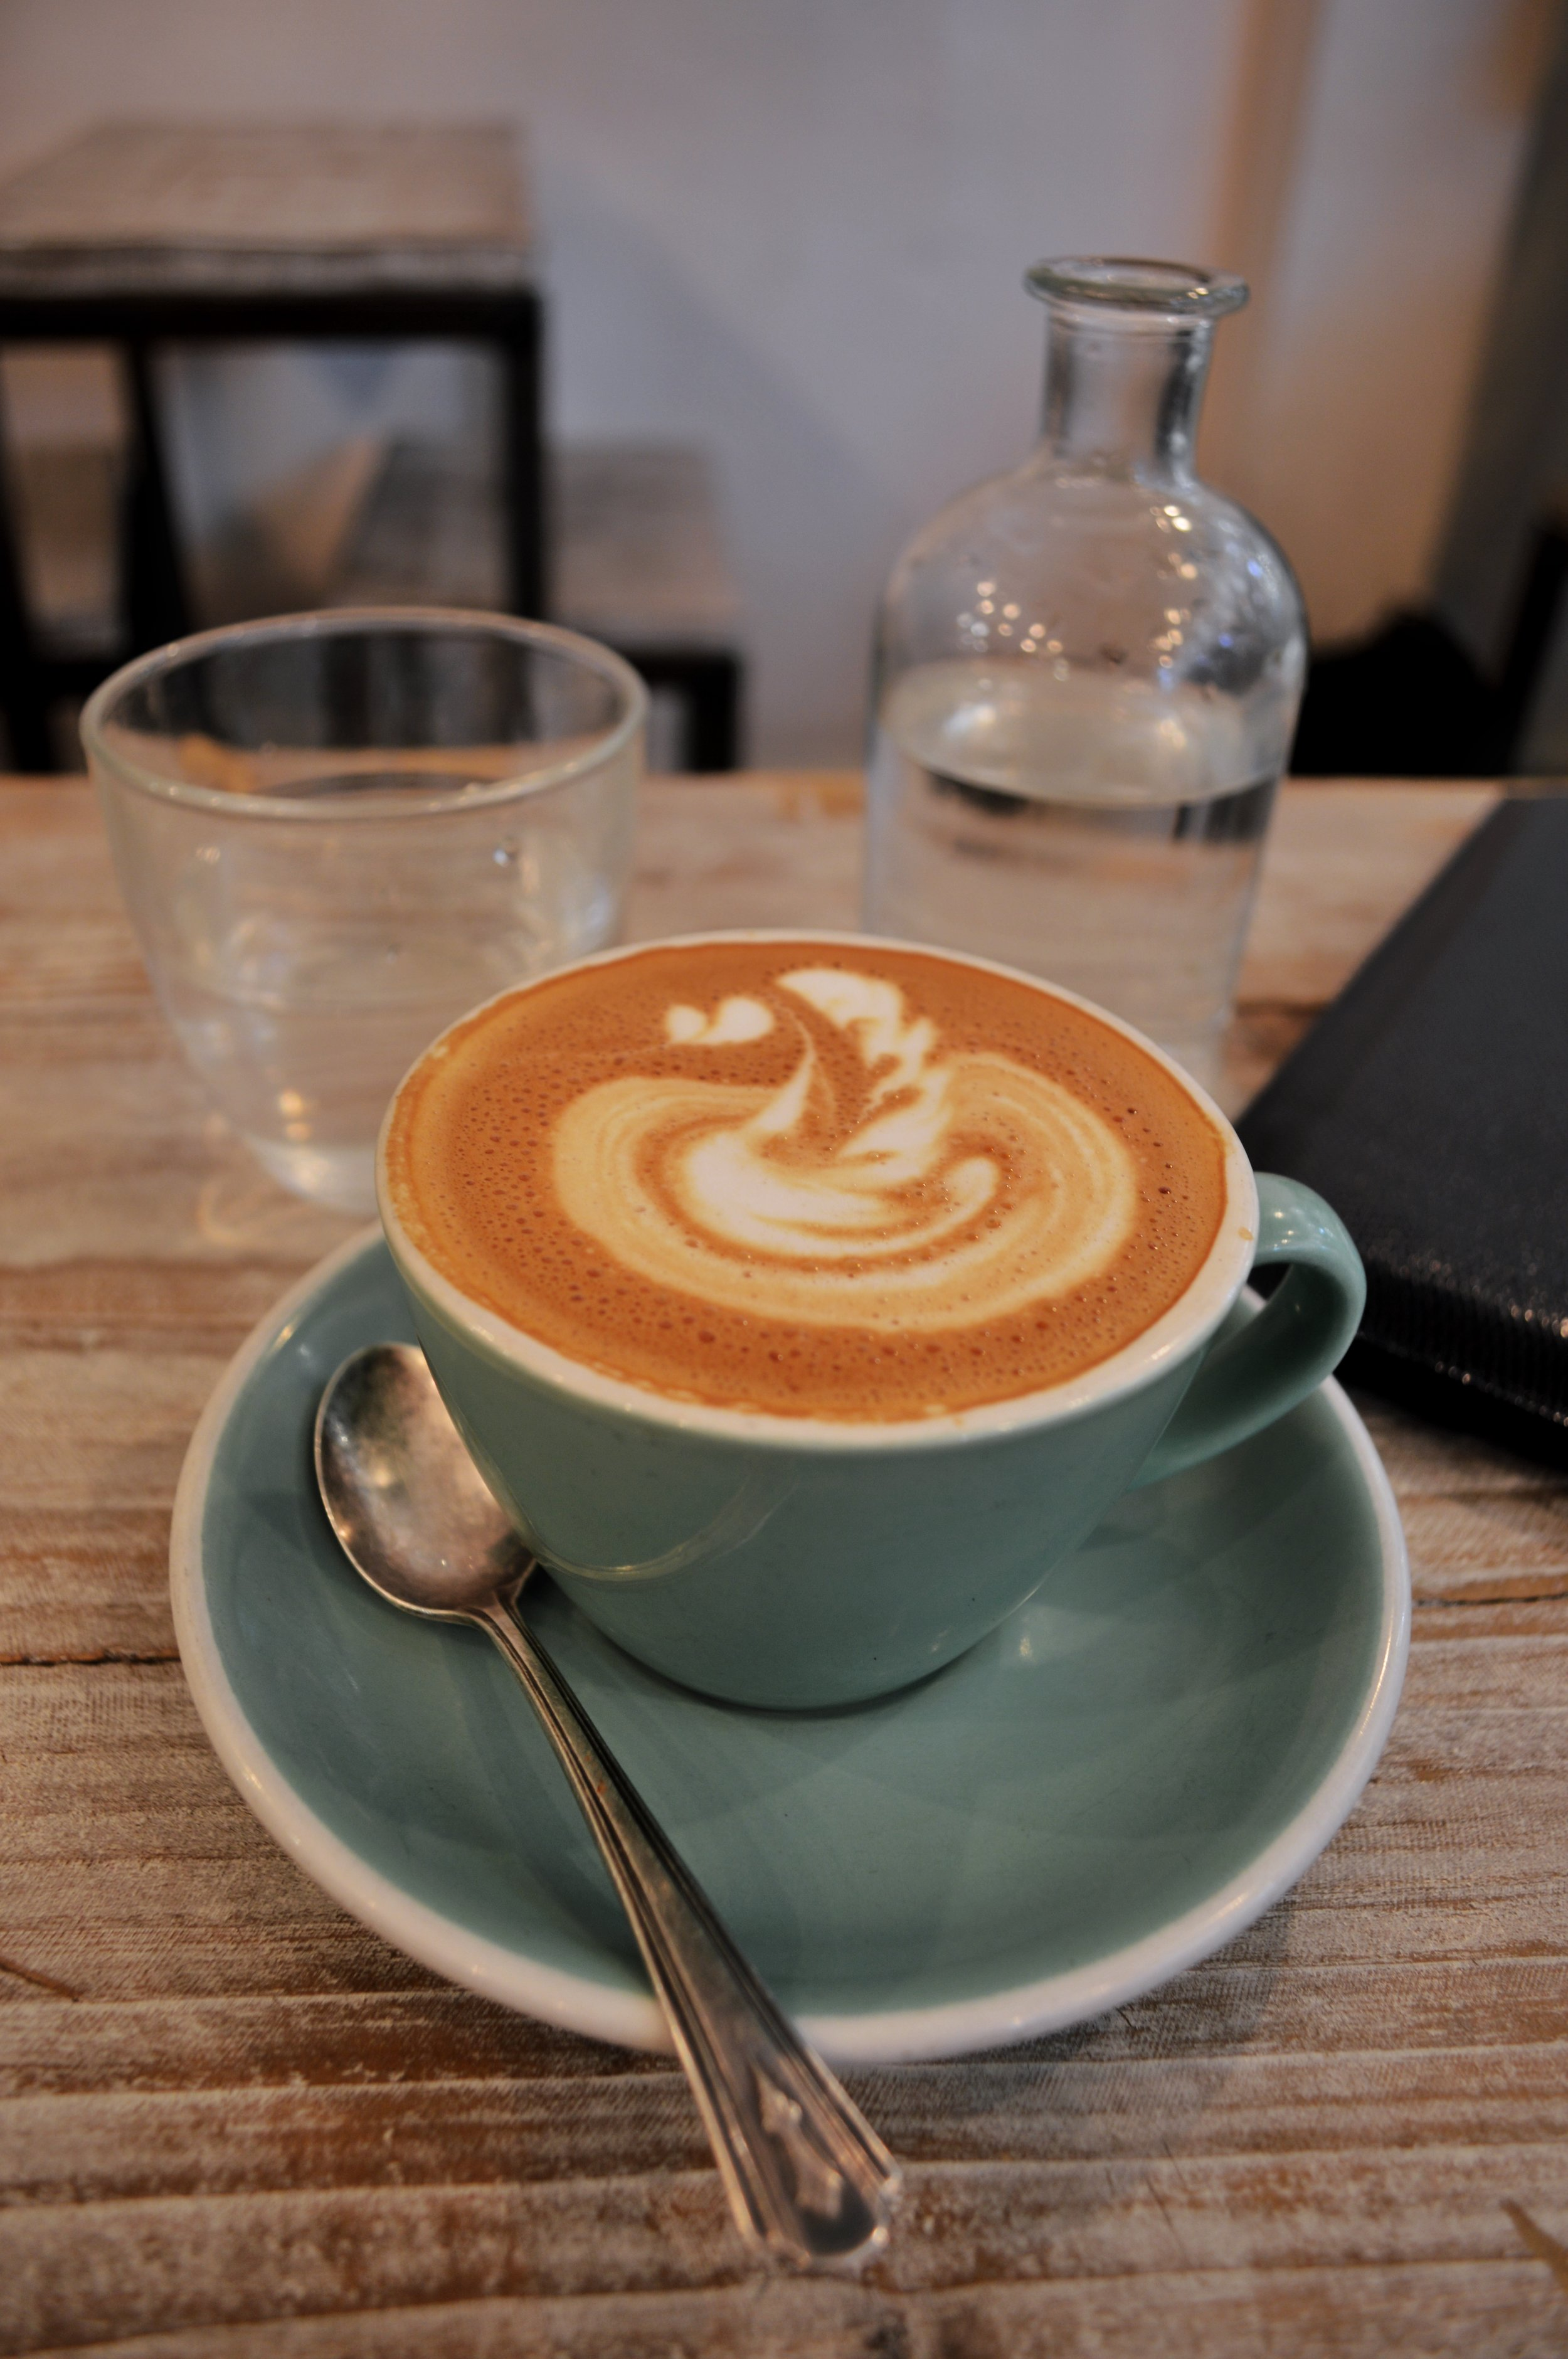 Flat white - Recreio, Brazil, natural by Square Mile Coffee Roasters